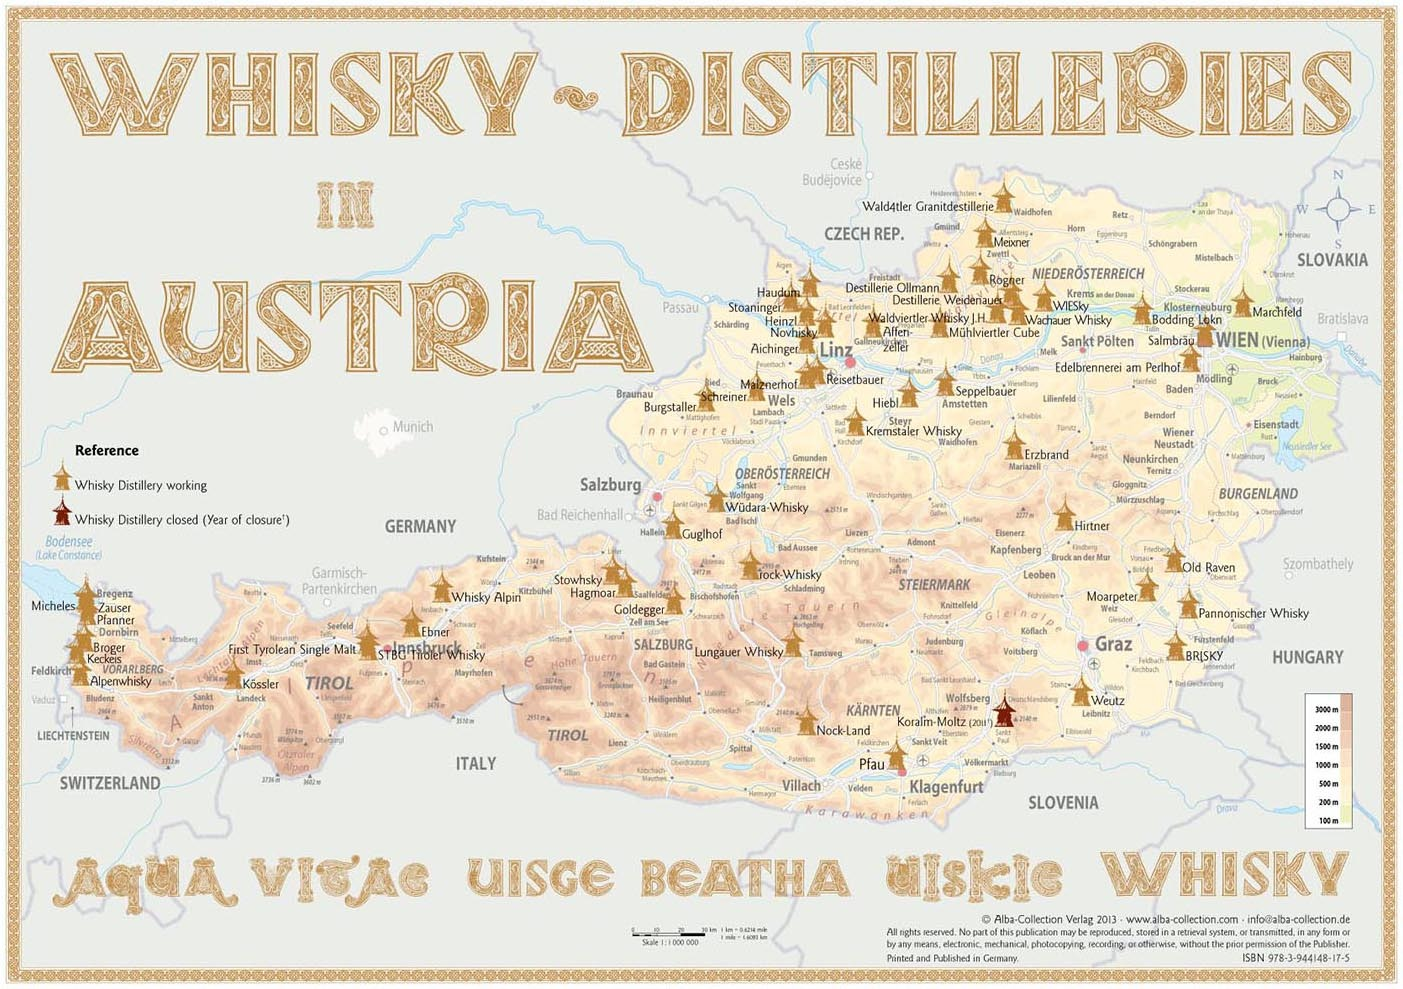 Whisky Distilleries Austria